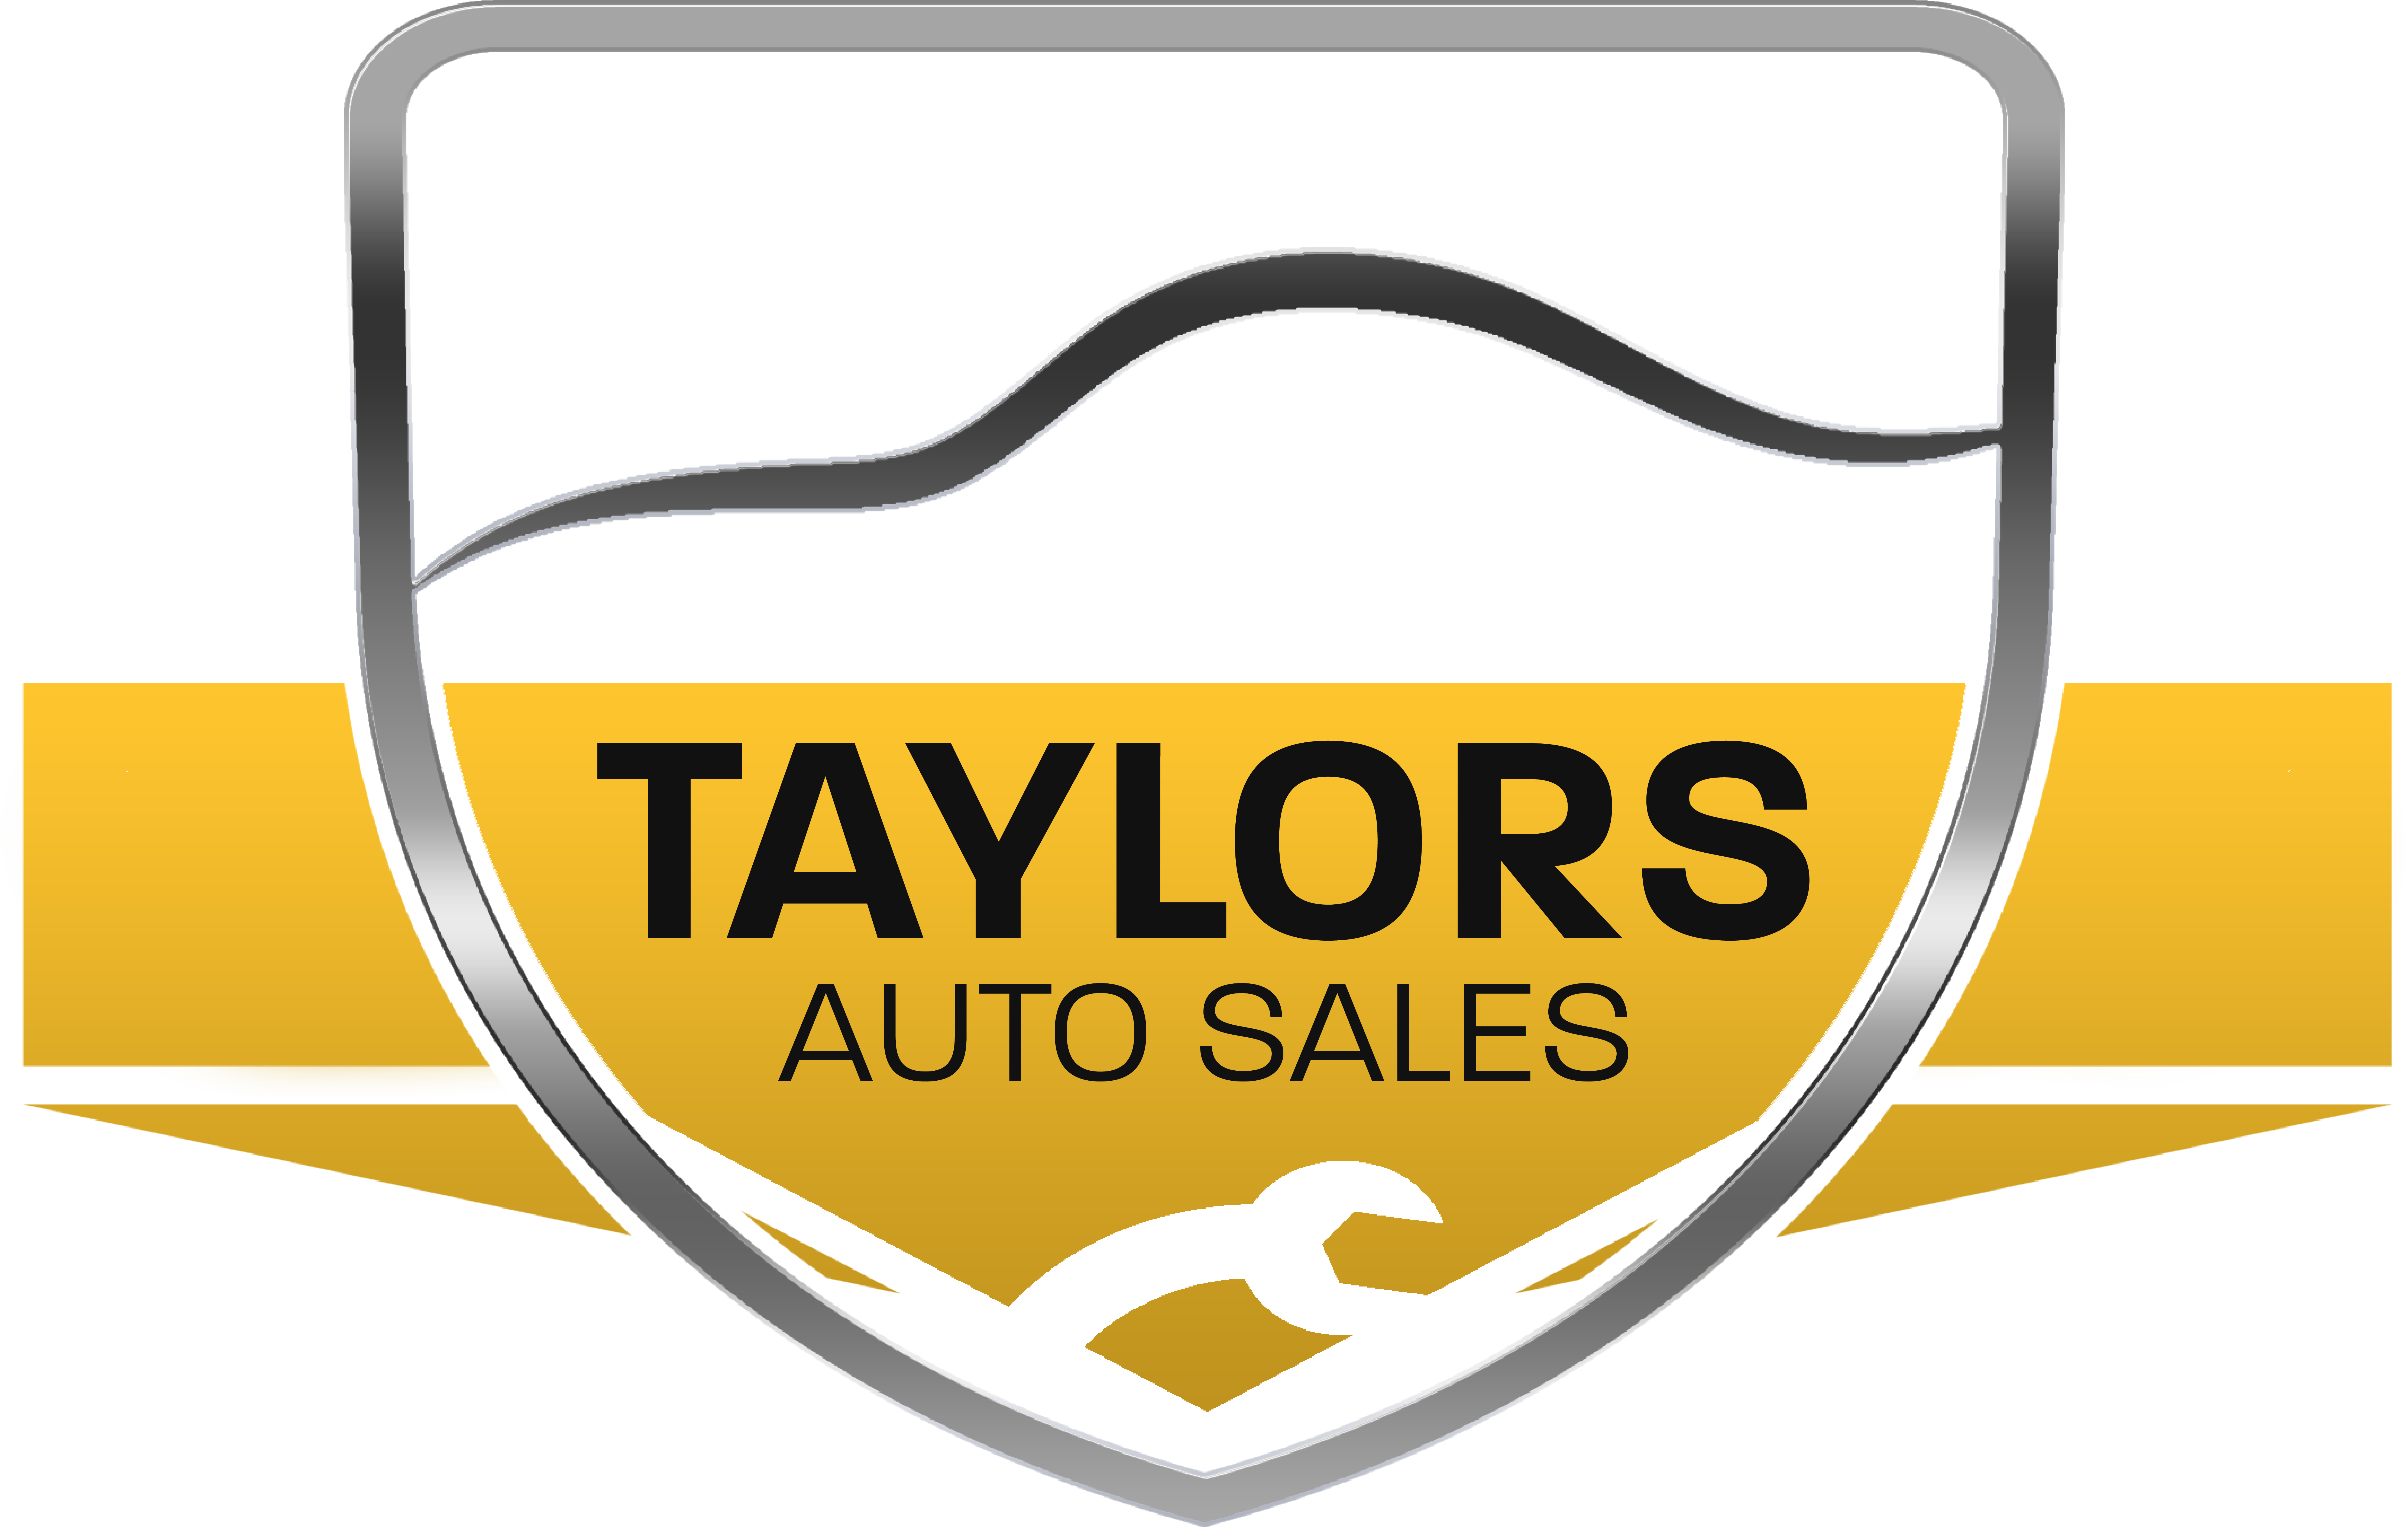 Taylors Auto Sales Wilmington NC